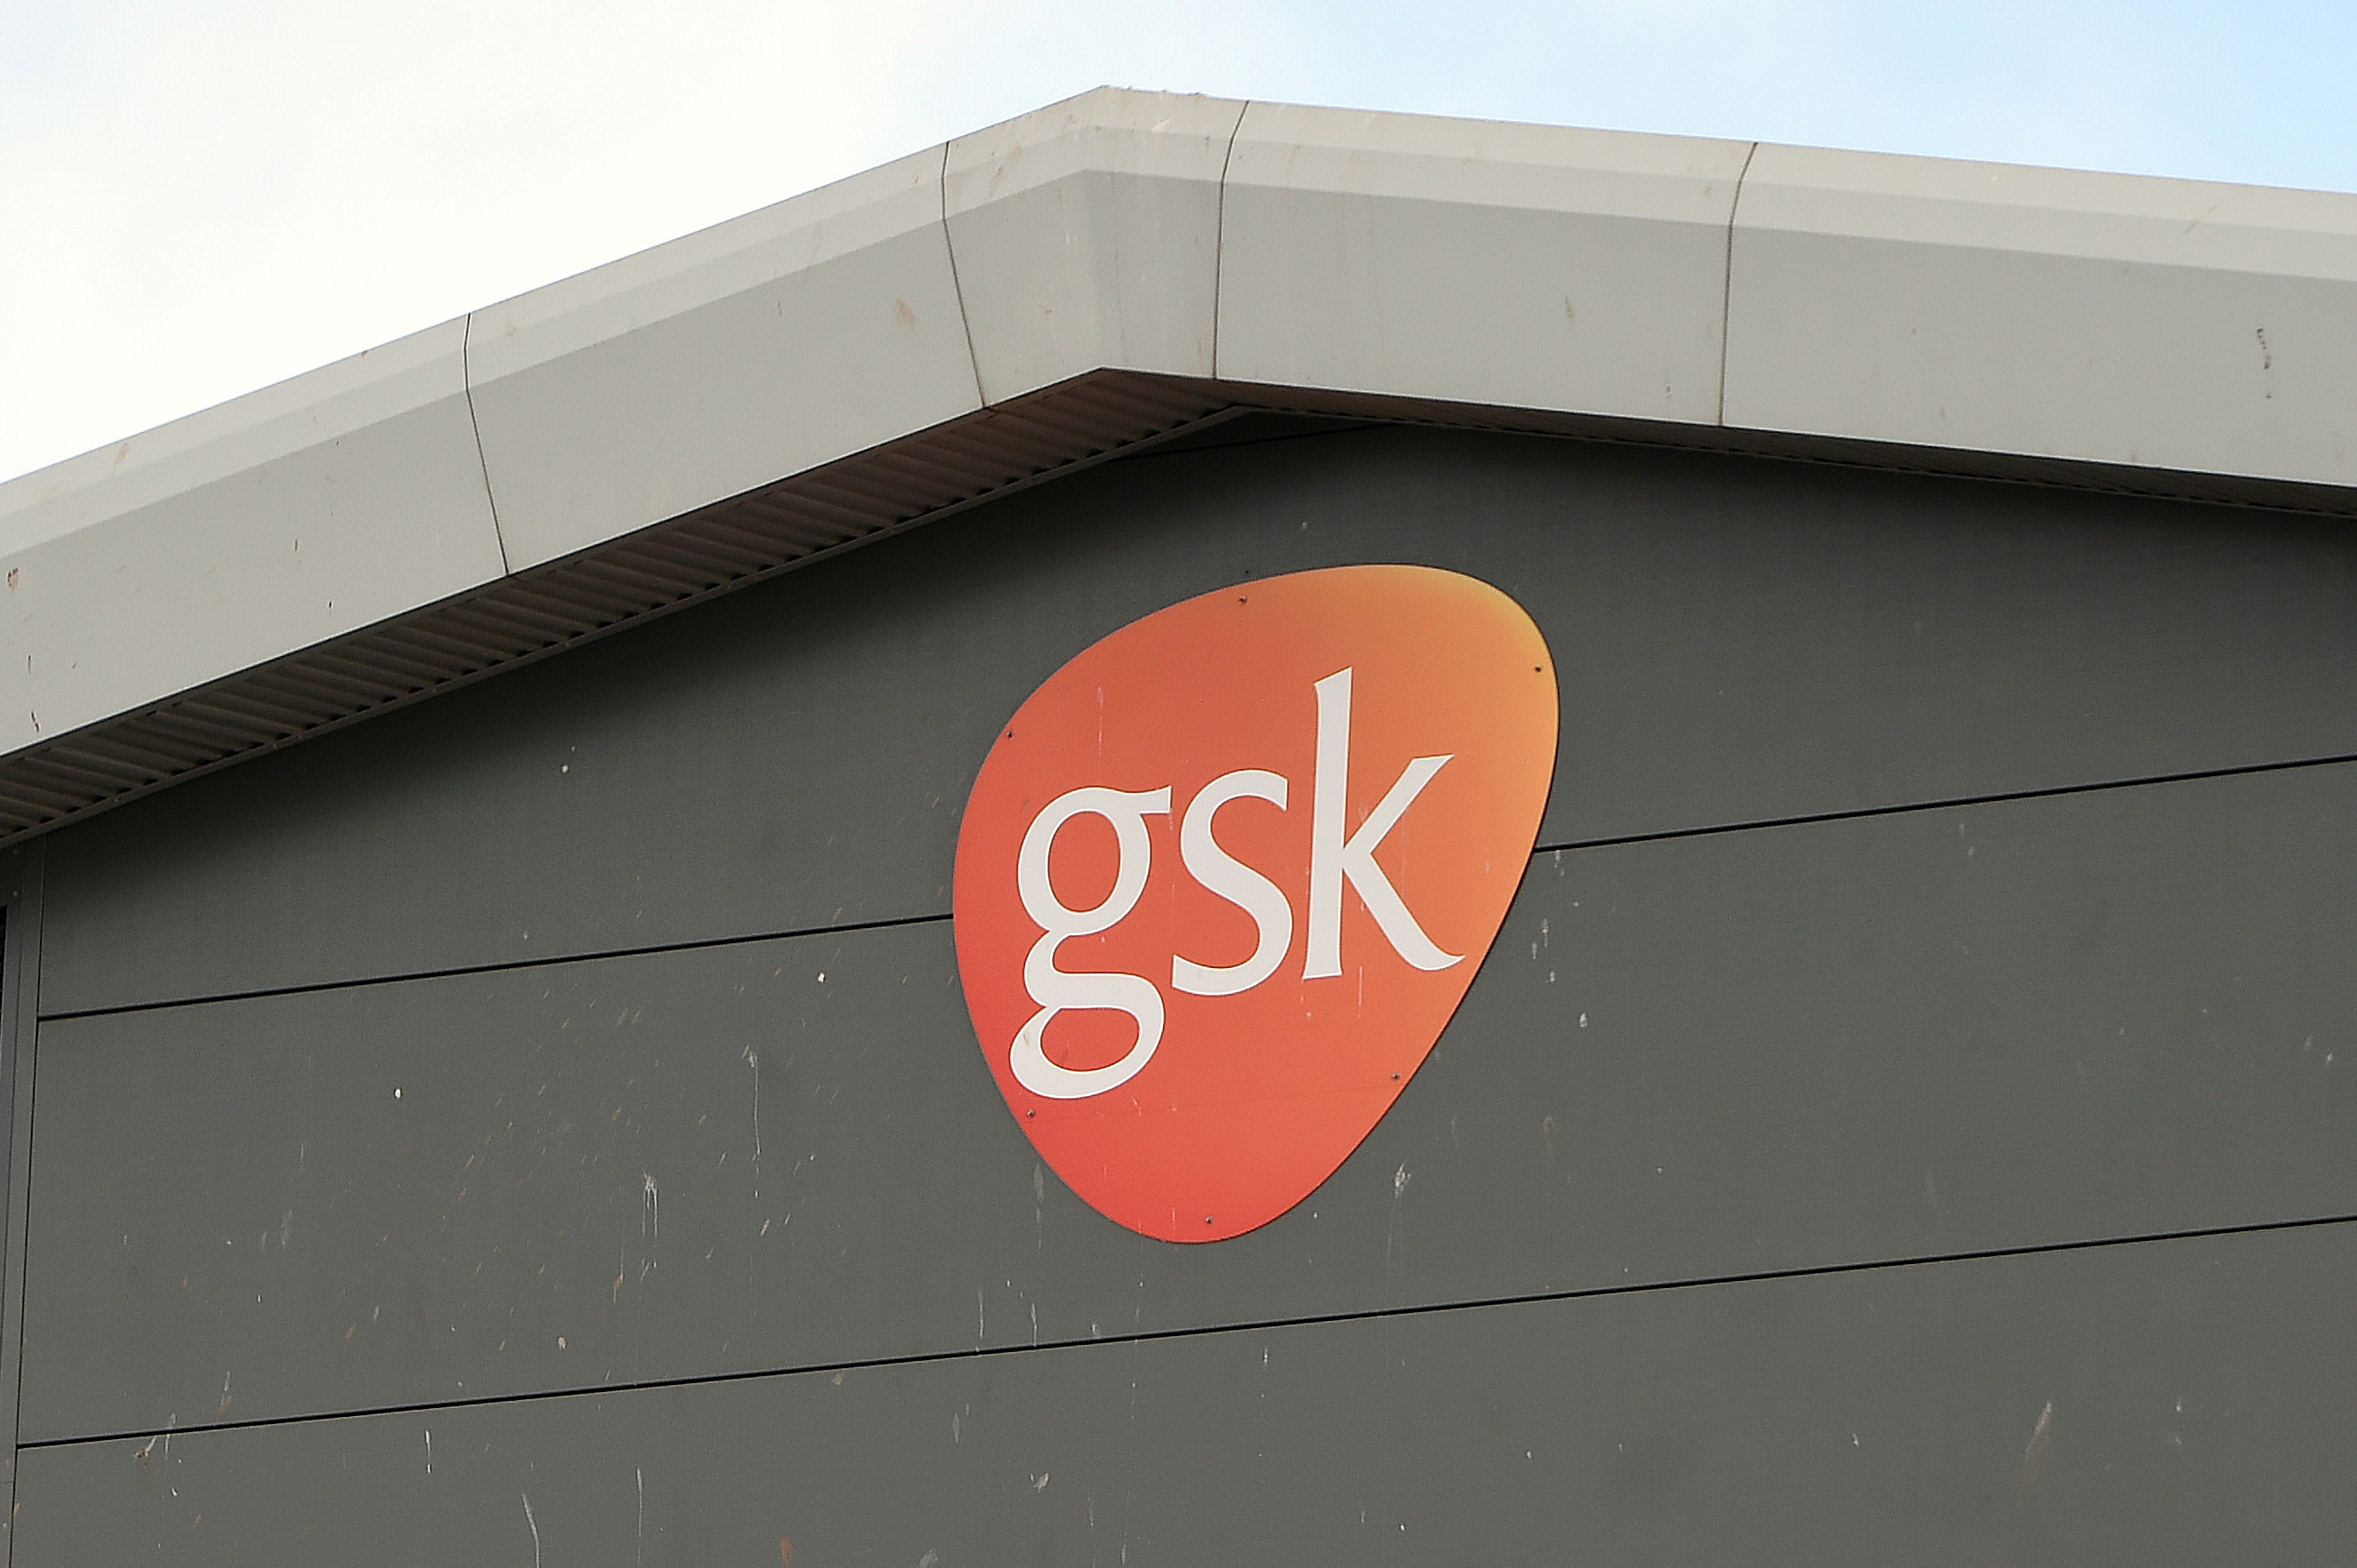 A GlaxoSmithKline plant is seen in Montrose, Scotland, Britain October 22, 2018. Andy Buchanan/Pool via REUTERS/File Photo